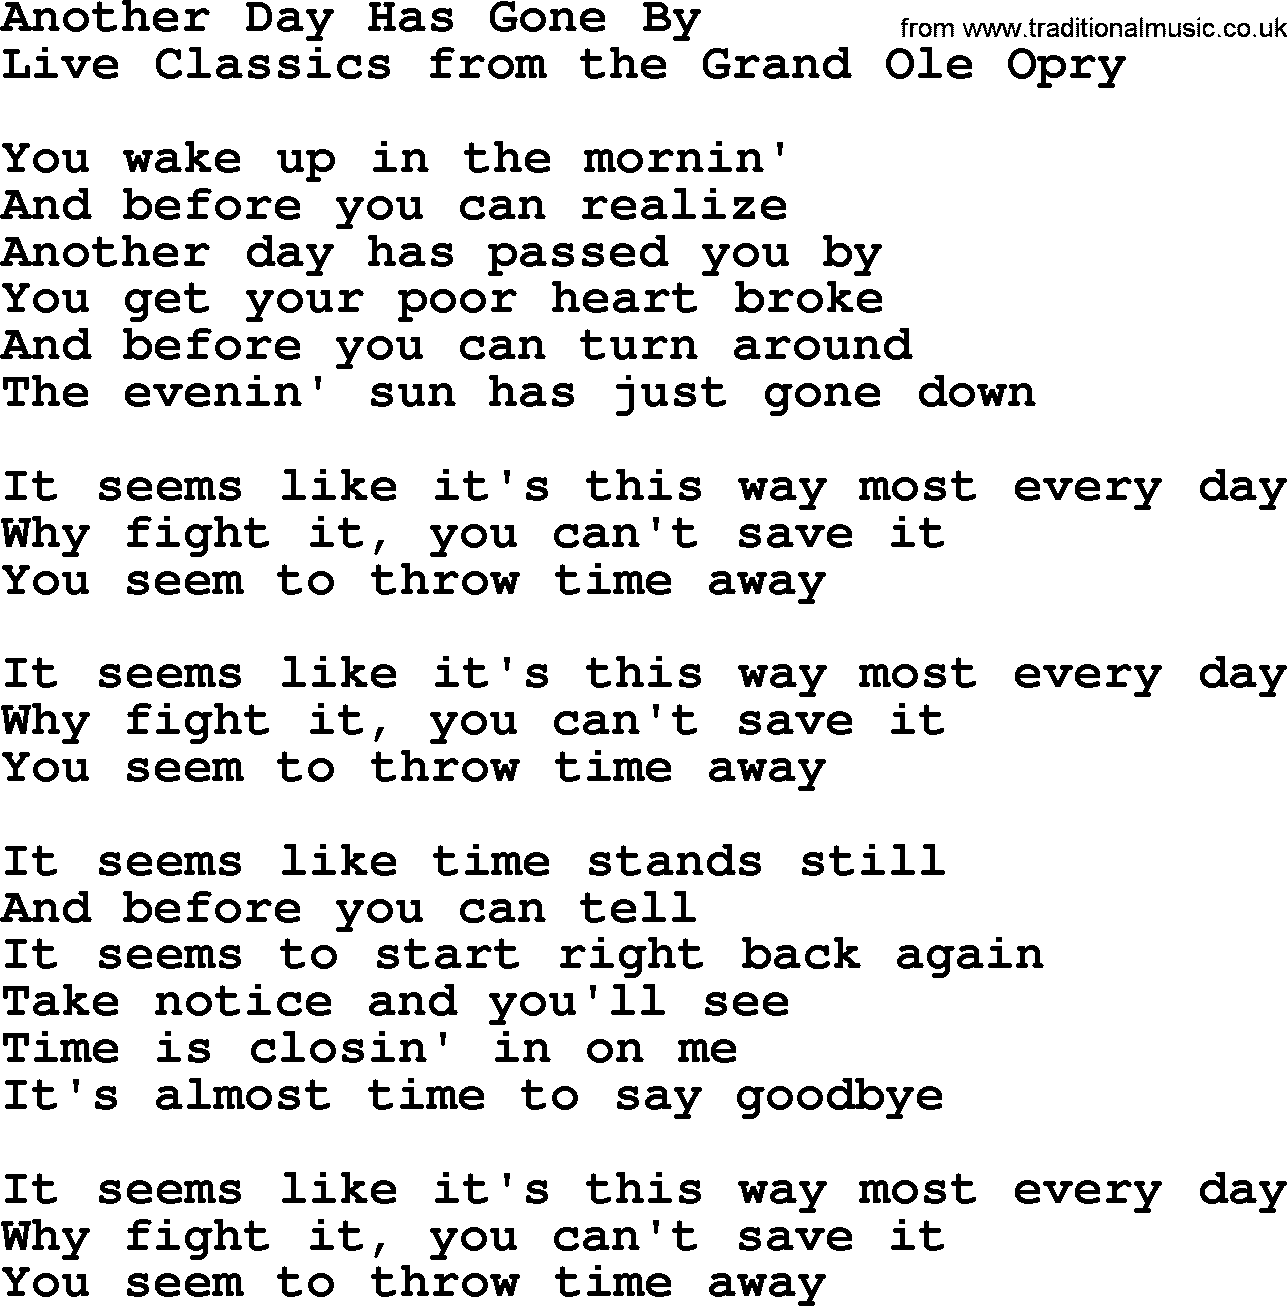 Another Day Gone Lyrics